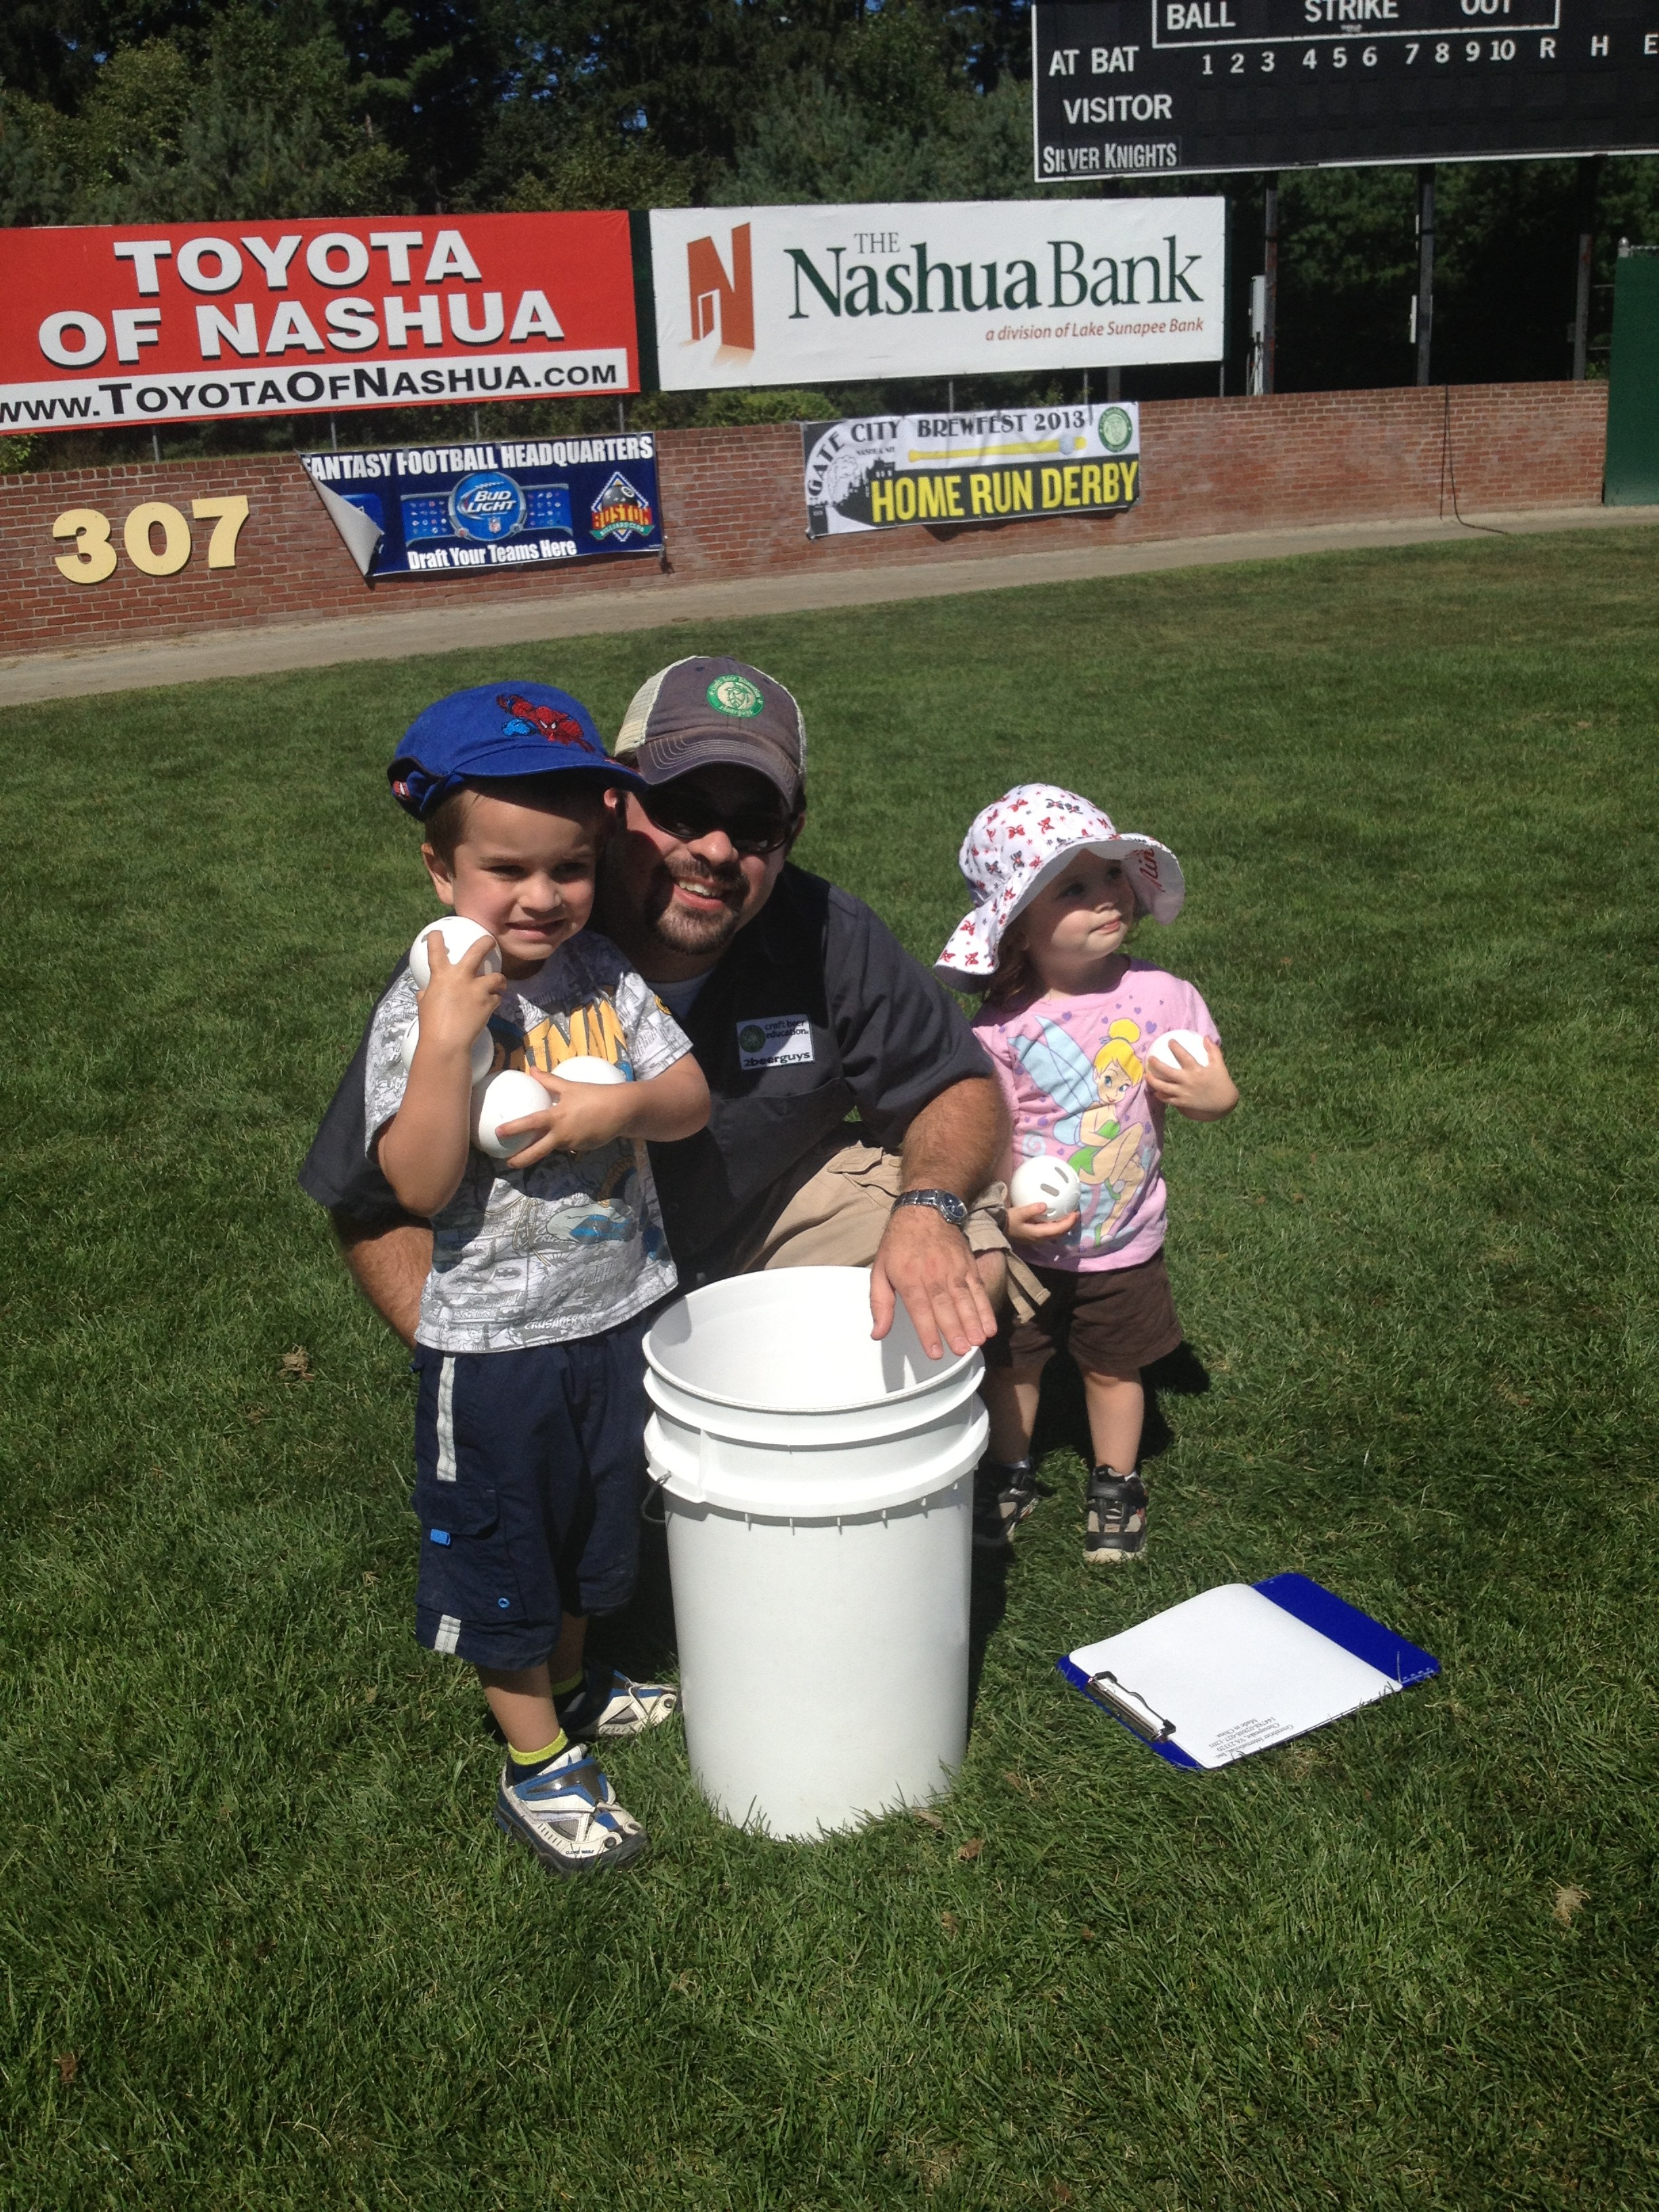 Patrick and Zoe help Daddy Ryan with the Home Run Derby